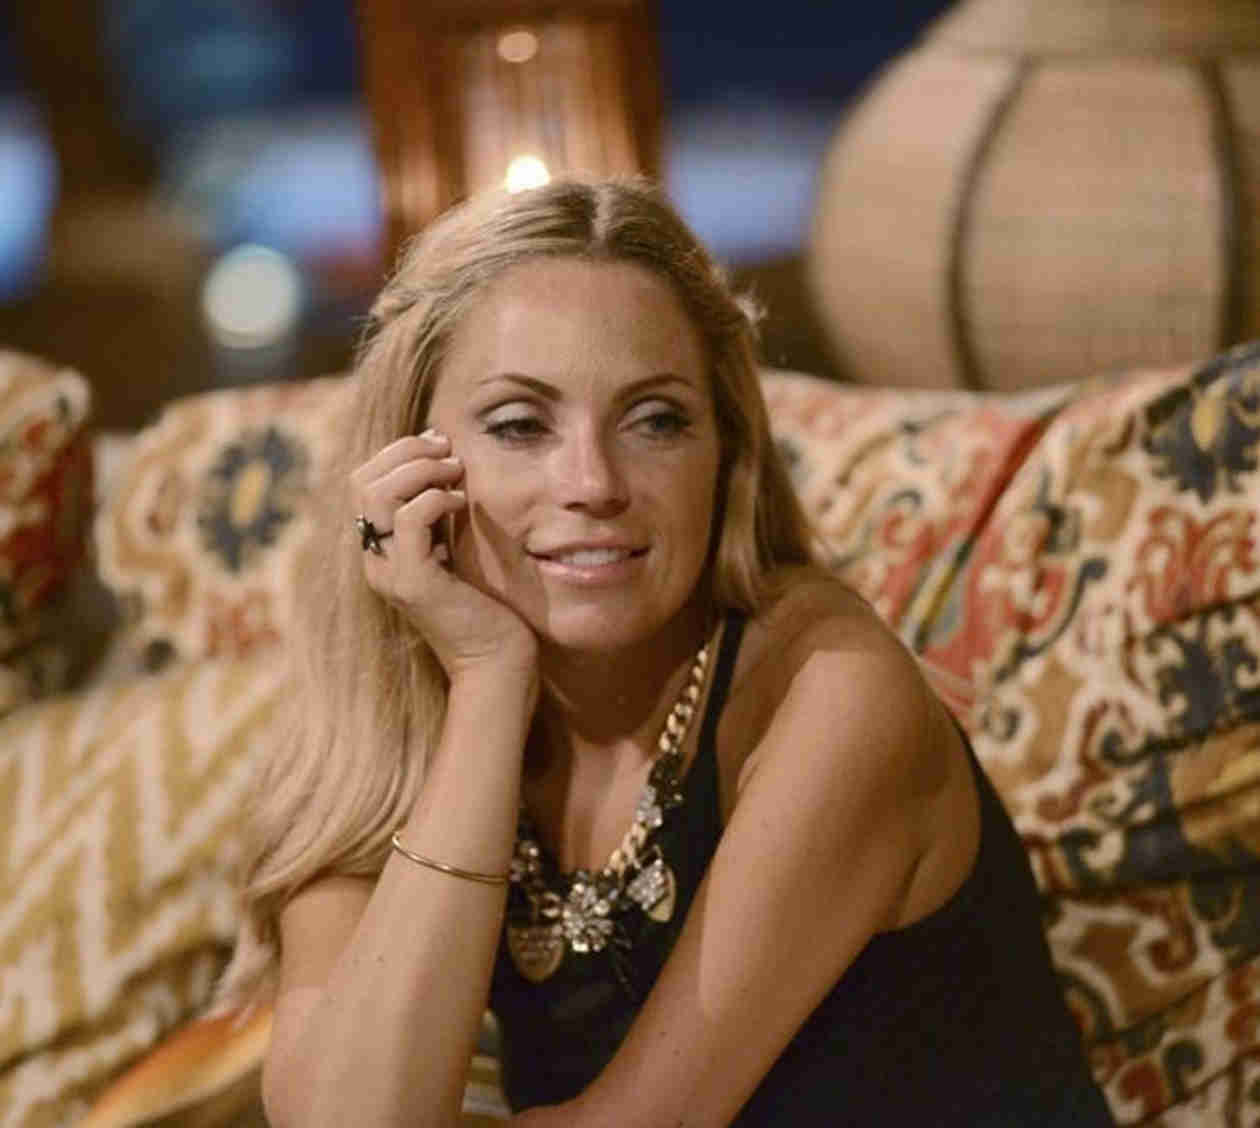 """Sarah Herron: """"I'm Not as Insecure as I Appear"""" on Bachelor in Paradise"""